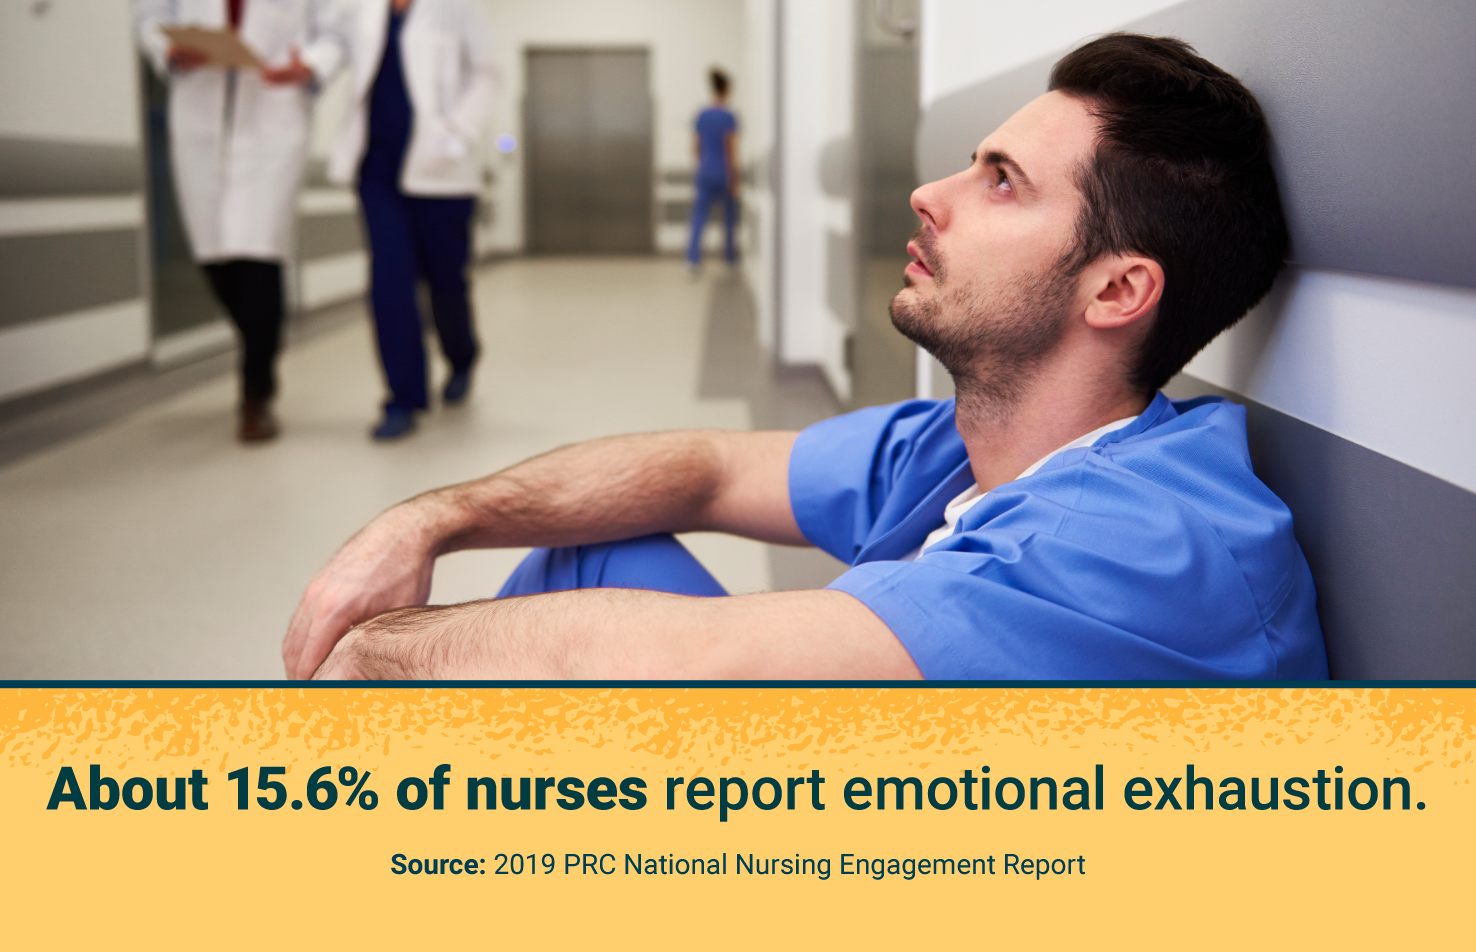 About 15.6% nurses report emotional exhaustion